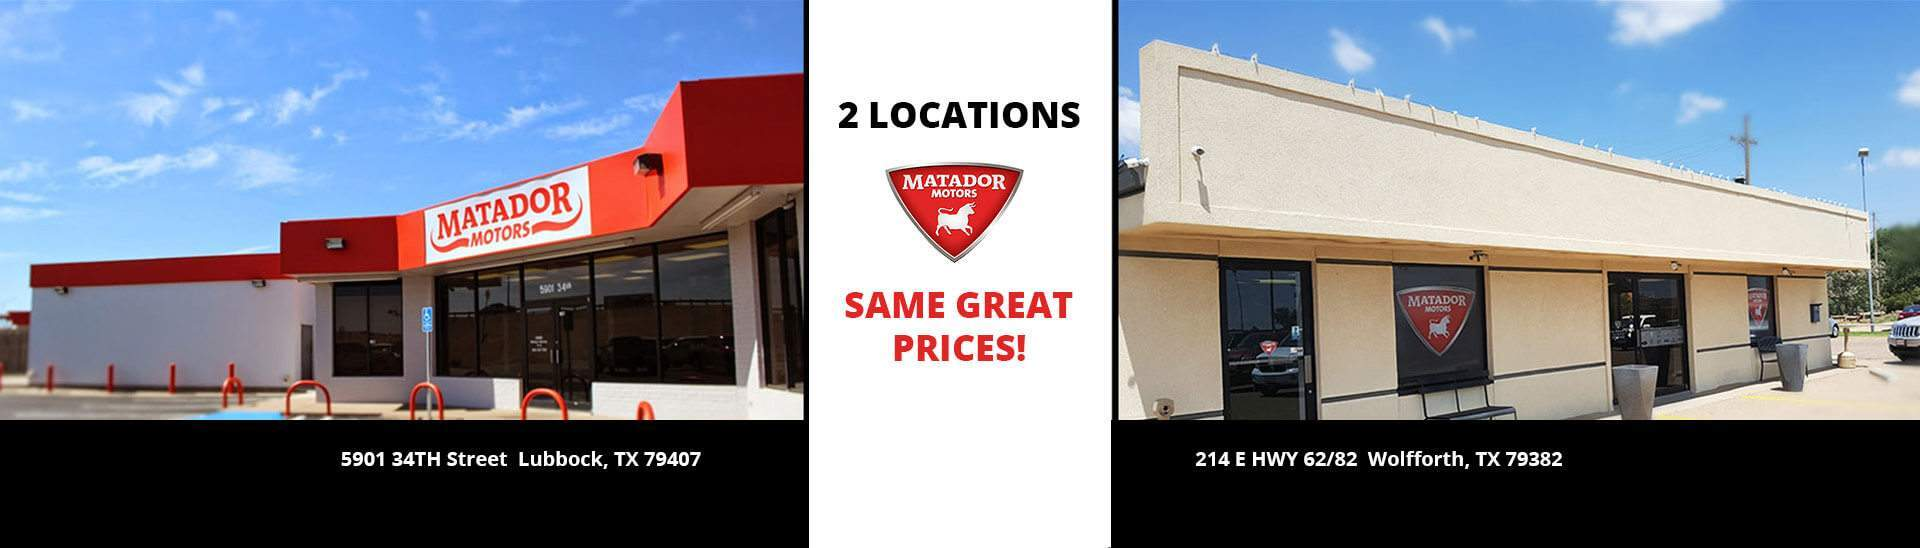 Matador Motors - 2 Locations in Texas